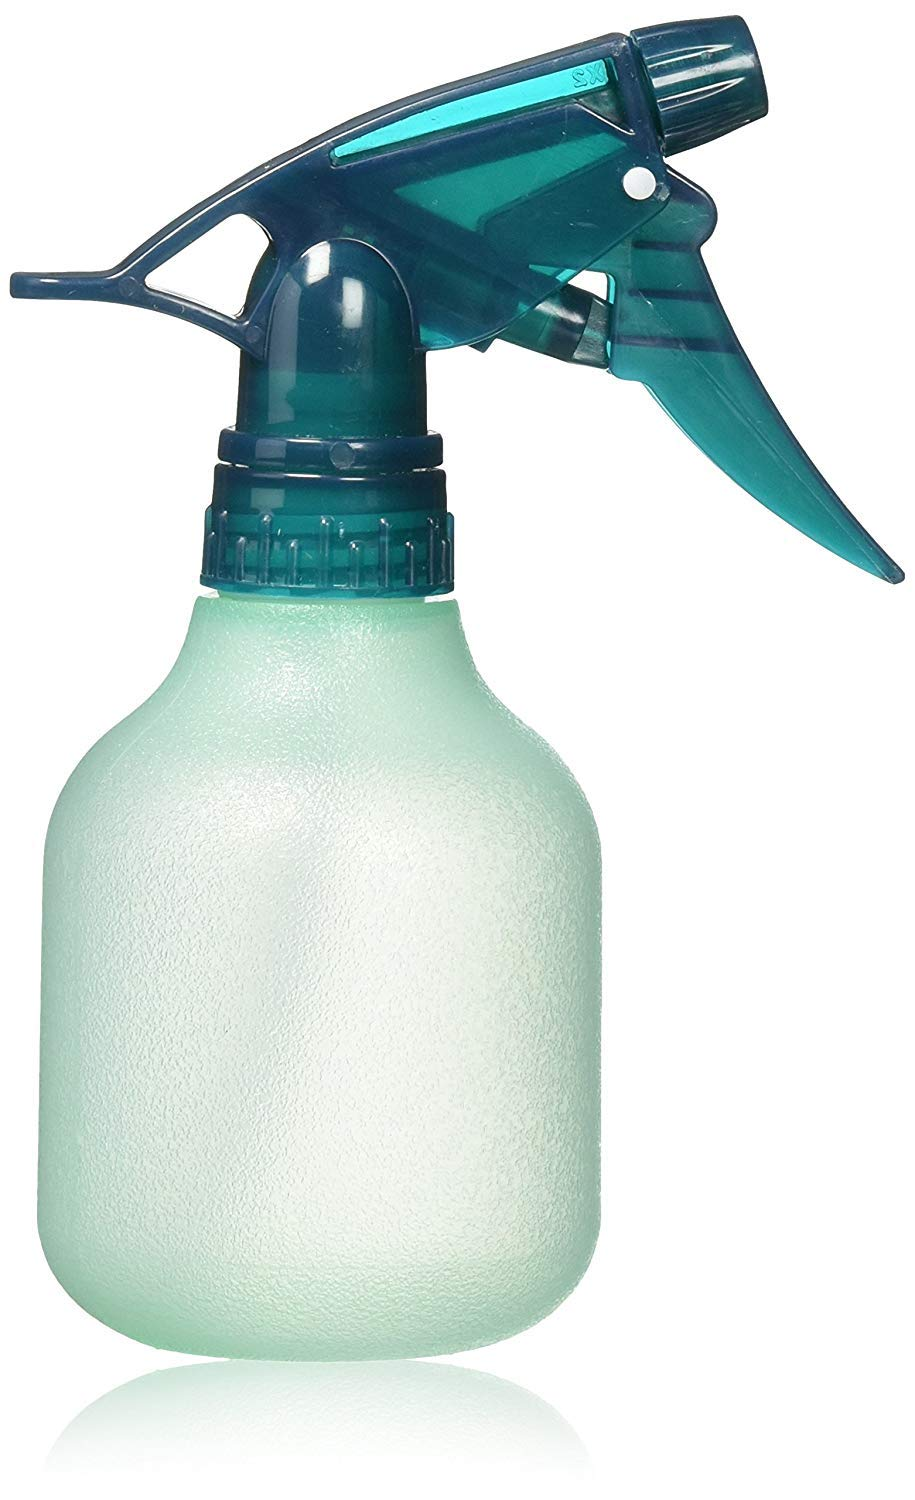 Watering Plants Hair styling Fine Mist Sprayer Trigger Squirt Bottle for Taming Hair 1 Pack, Green Showering Pets Rayson Empty Spray Bottle Refillable Container